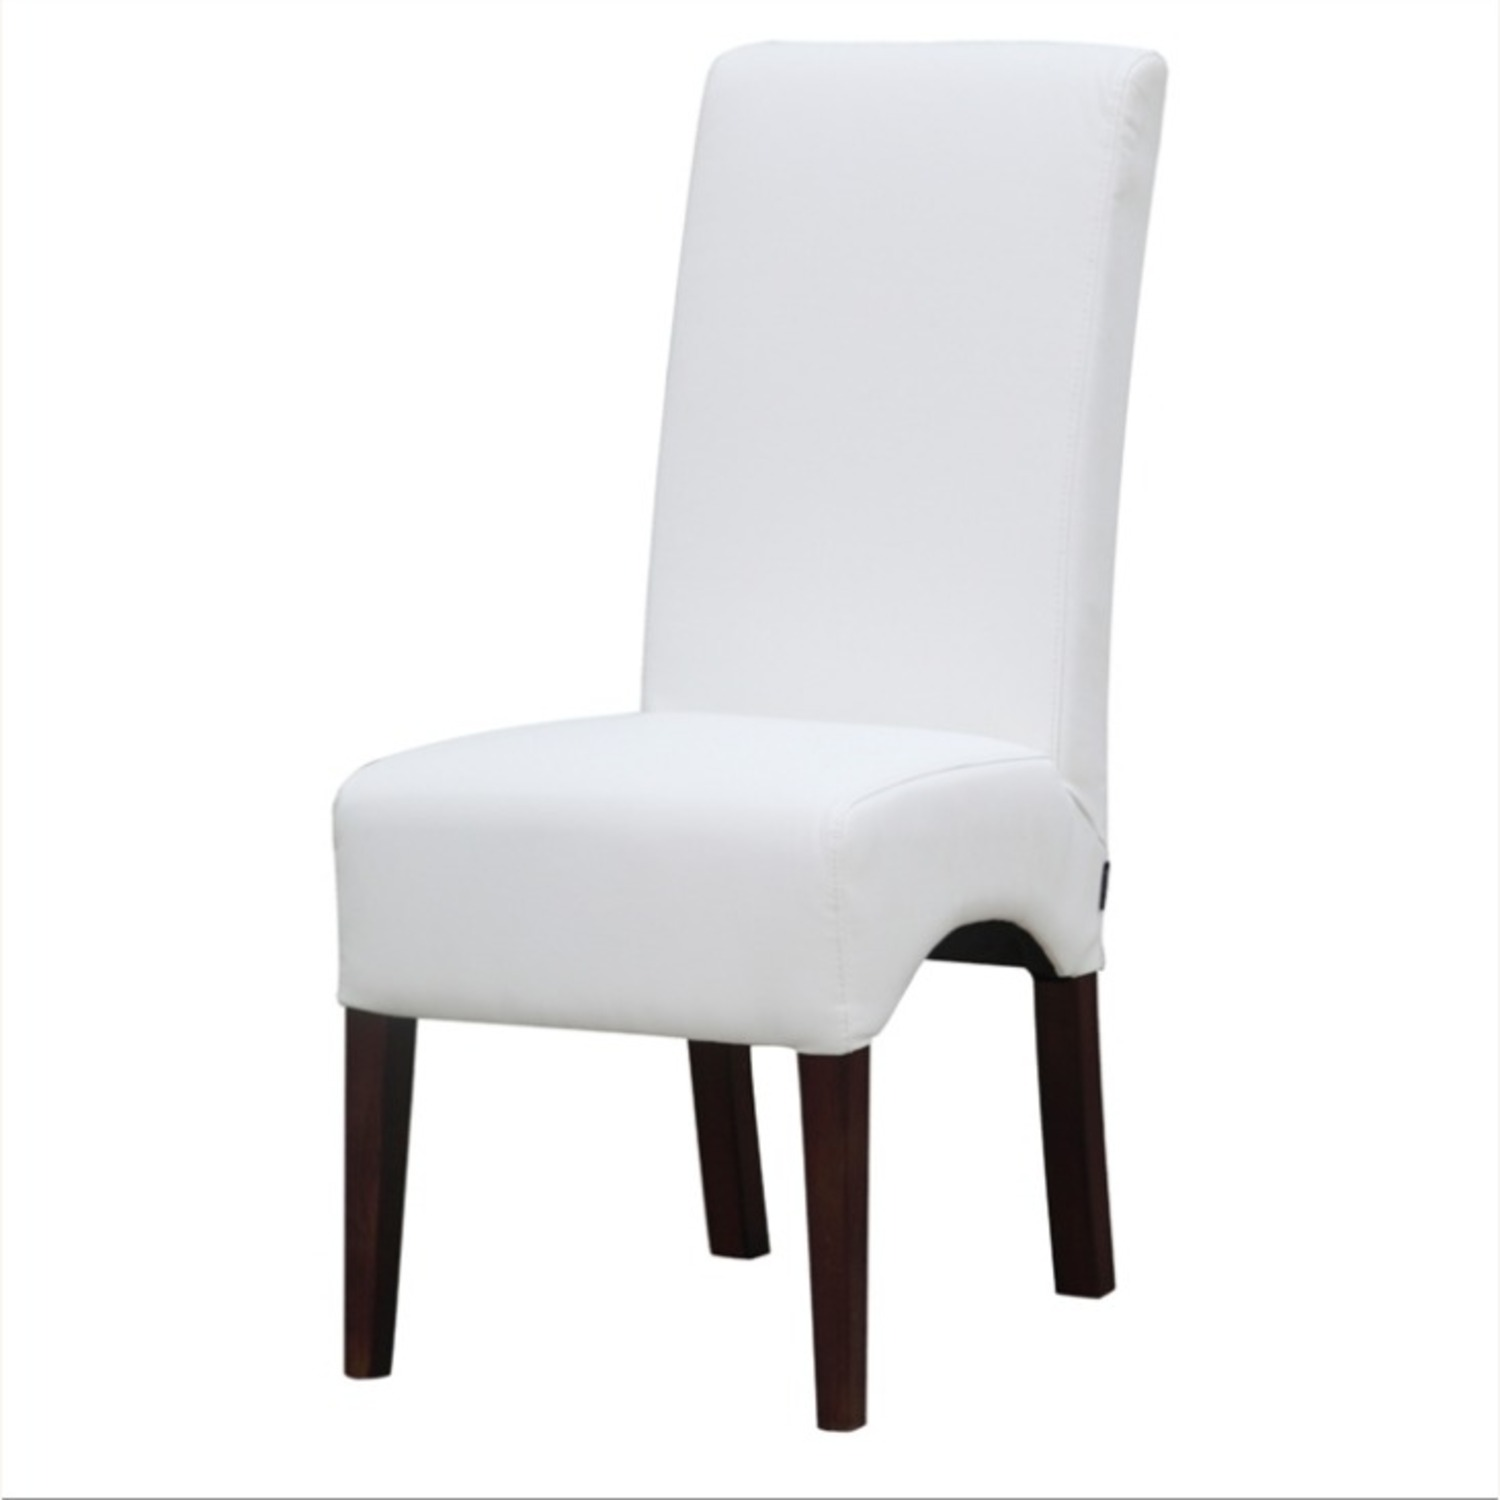 Modern Dining Chair In White PU Leather - image-4